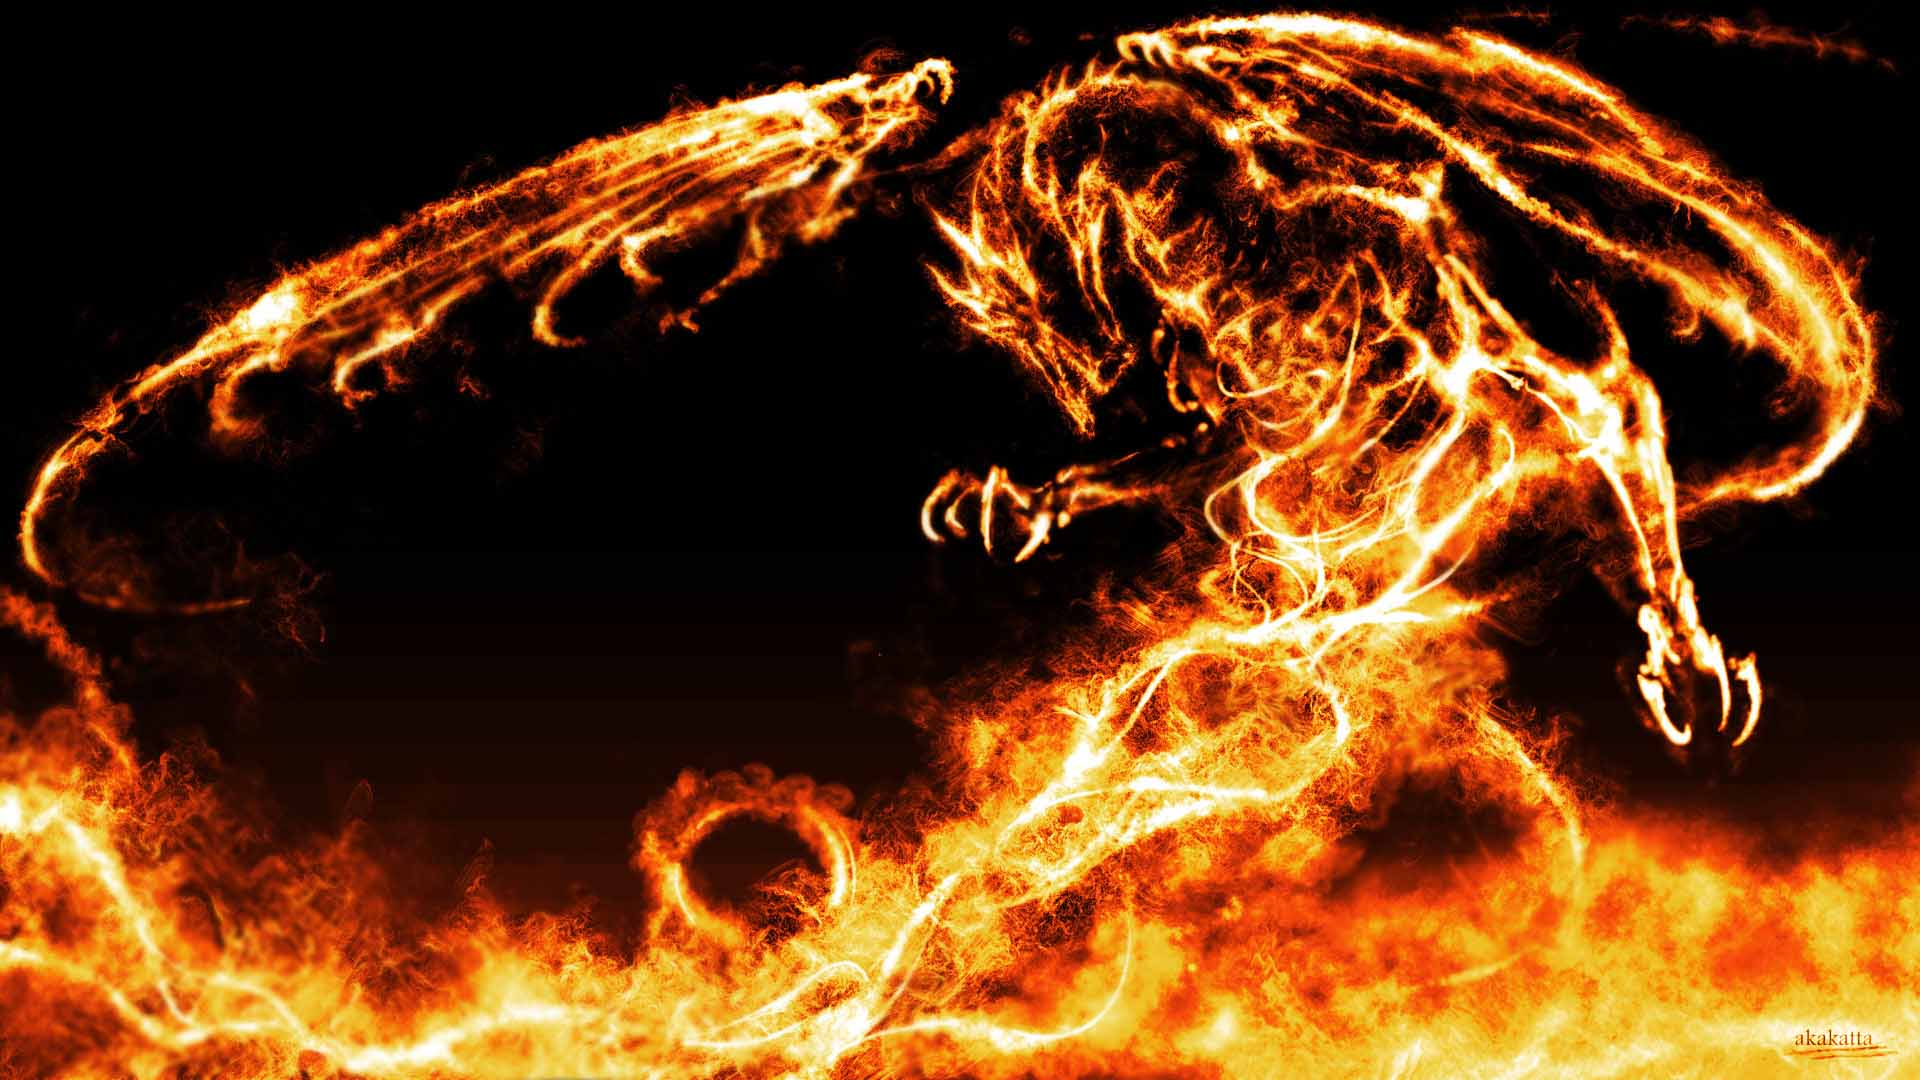 Collection-of-Dragon-com-on-HD-1920%C3%971080-Dragon-Pictures-Wallpape-wallpaper-wp3403997